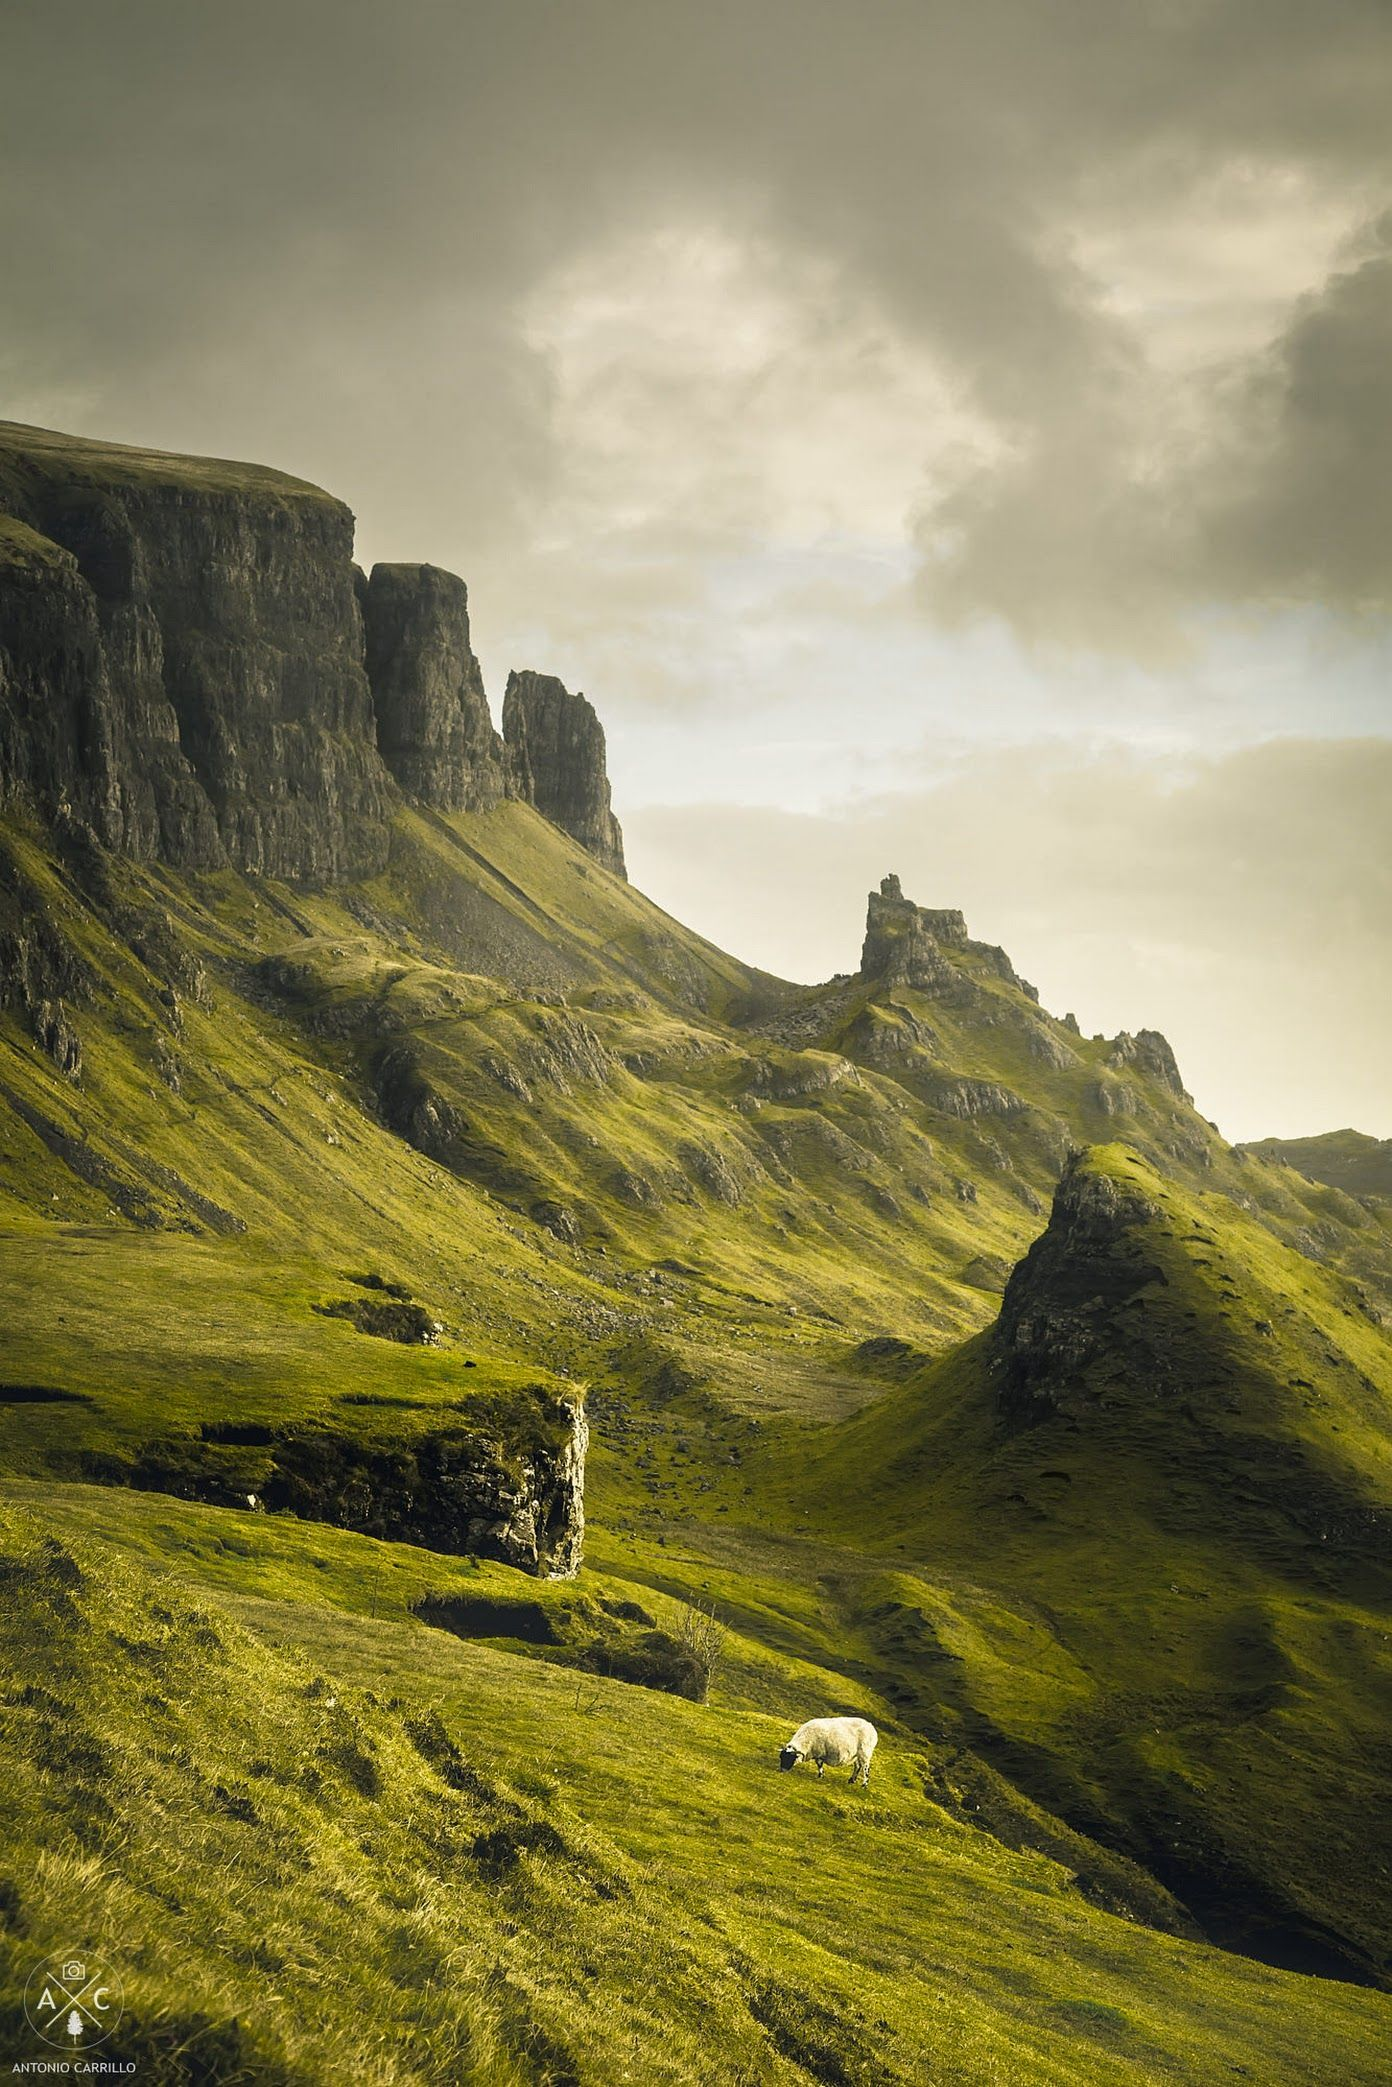 How To Focus In Landscape Photography For Good Results Cool Places To Visit Isle Of Skye Landscape Photography